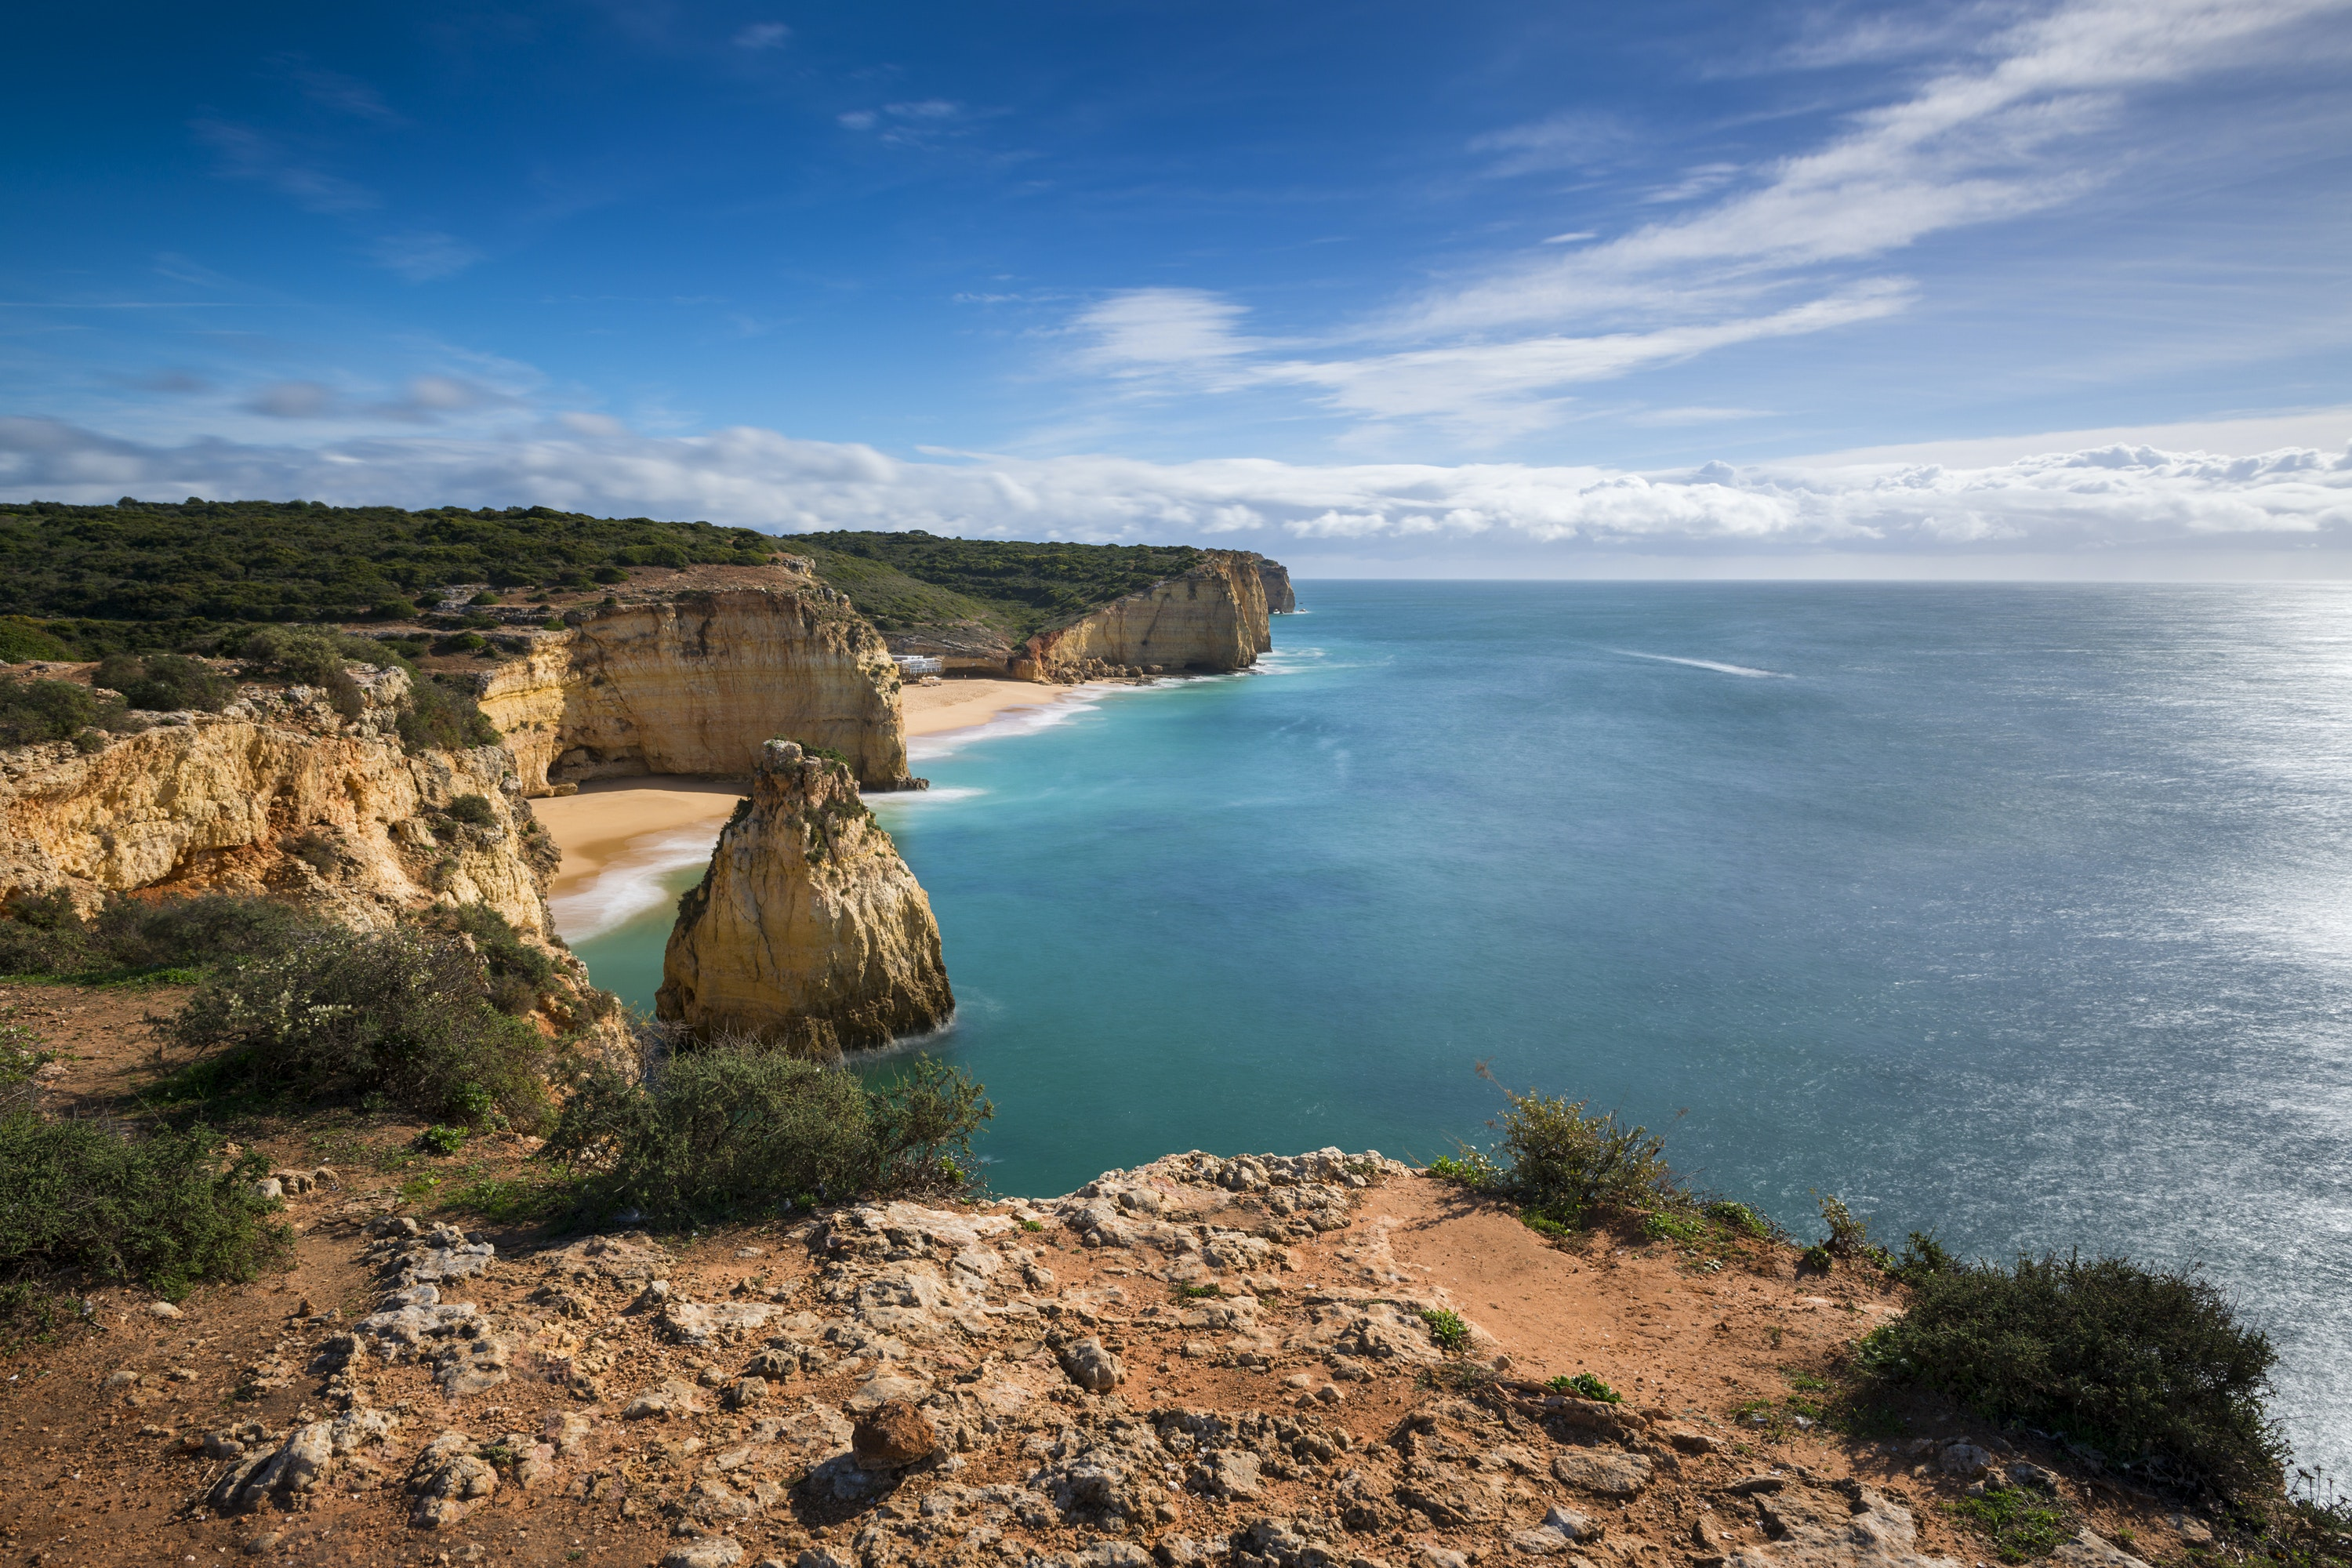 Caneiros is one of the Algarve's finest stretches of sand.